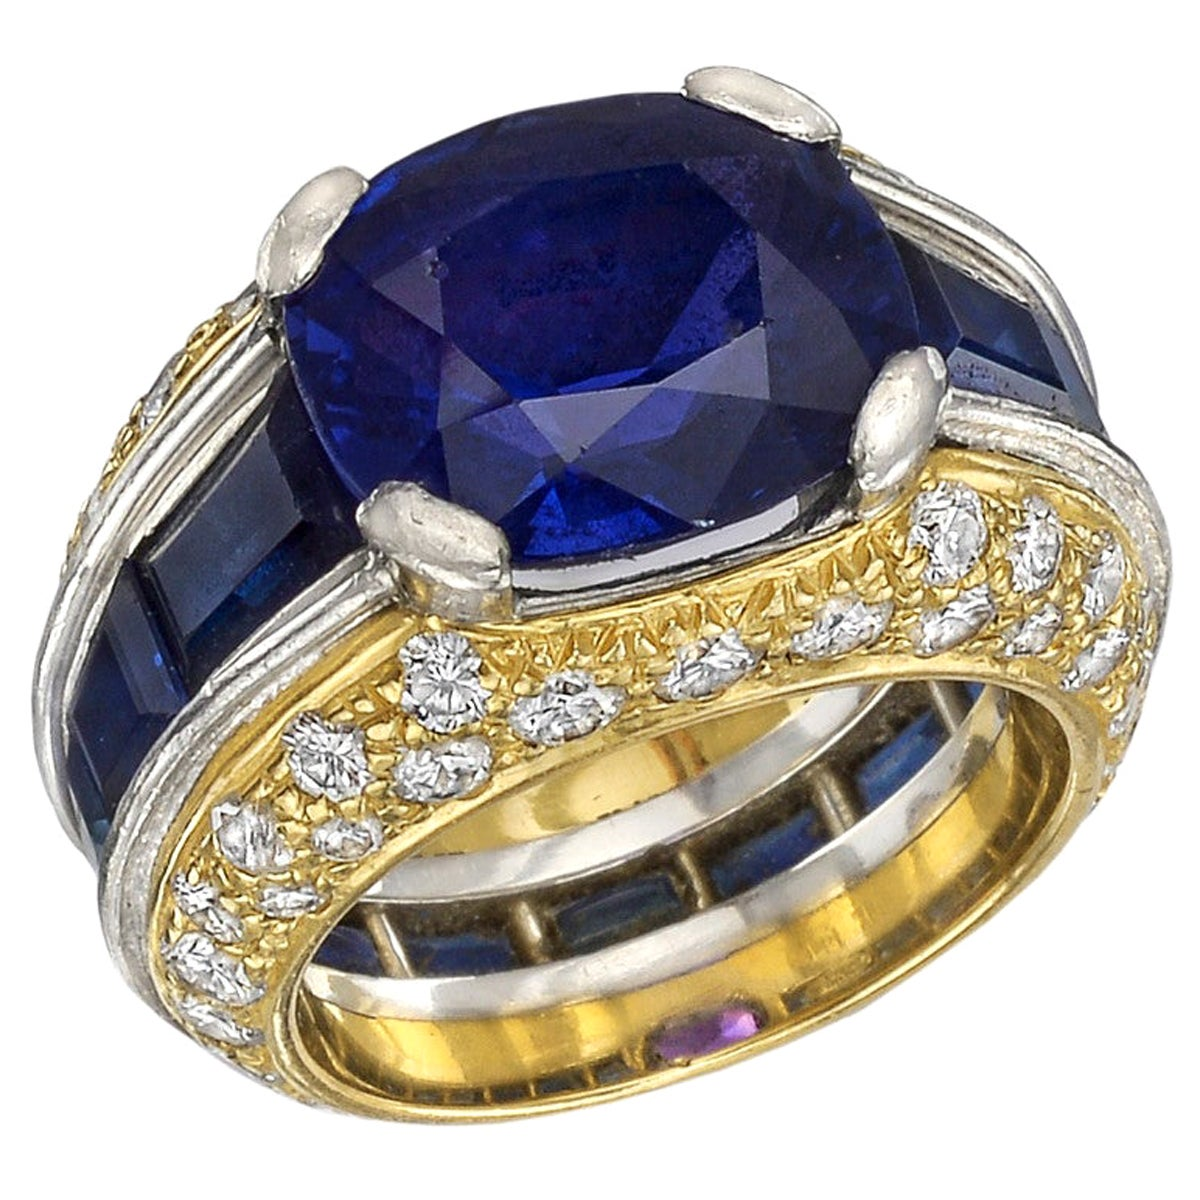 5.15 Carat Sapphire and Diamond Cocktail Ring